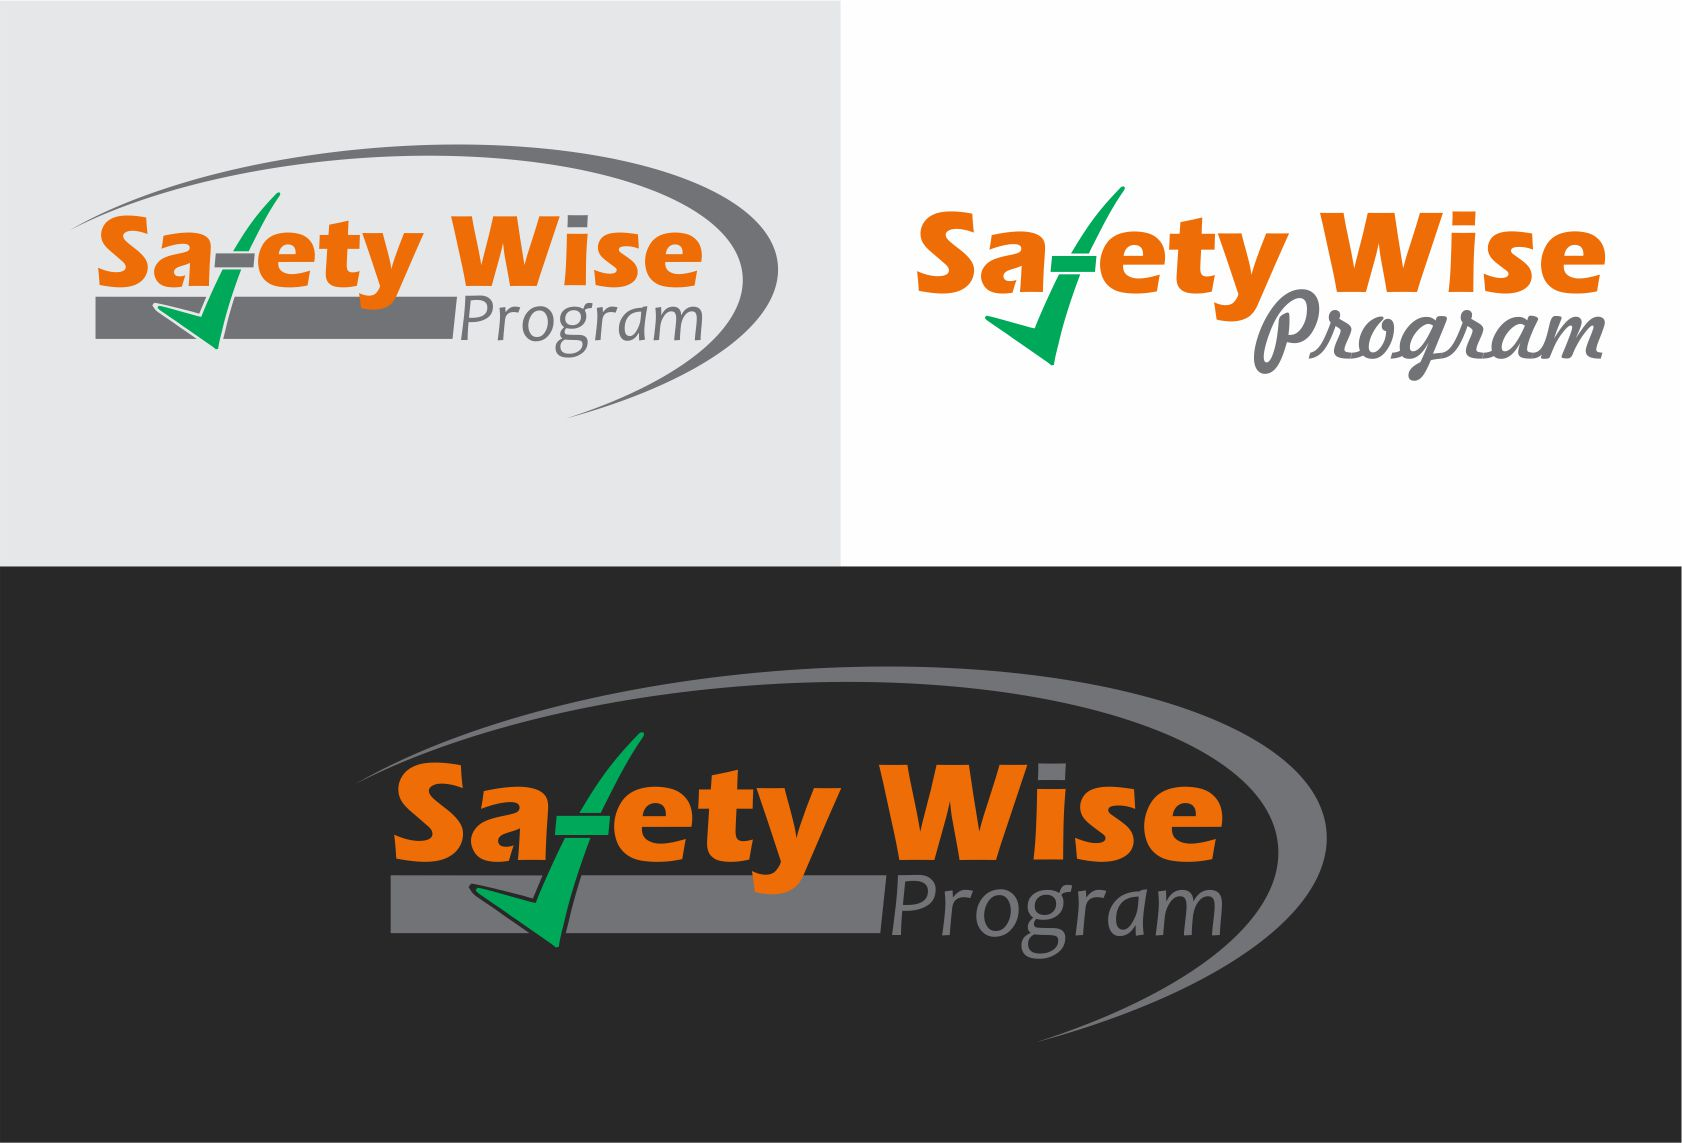 Logo Design by Dilip Aponsu - Entry No. 155 in the Logo Design Contest New Logo Design for Safety Wise Program.